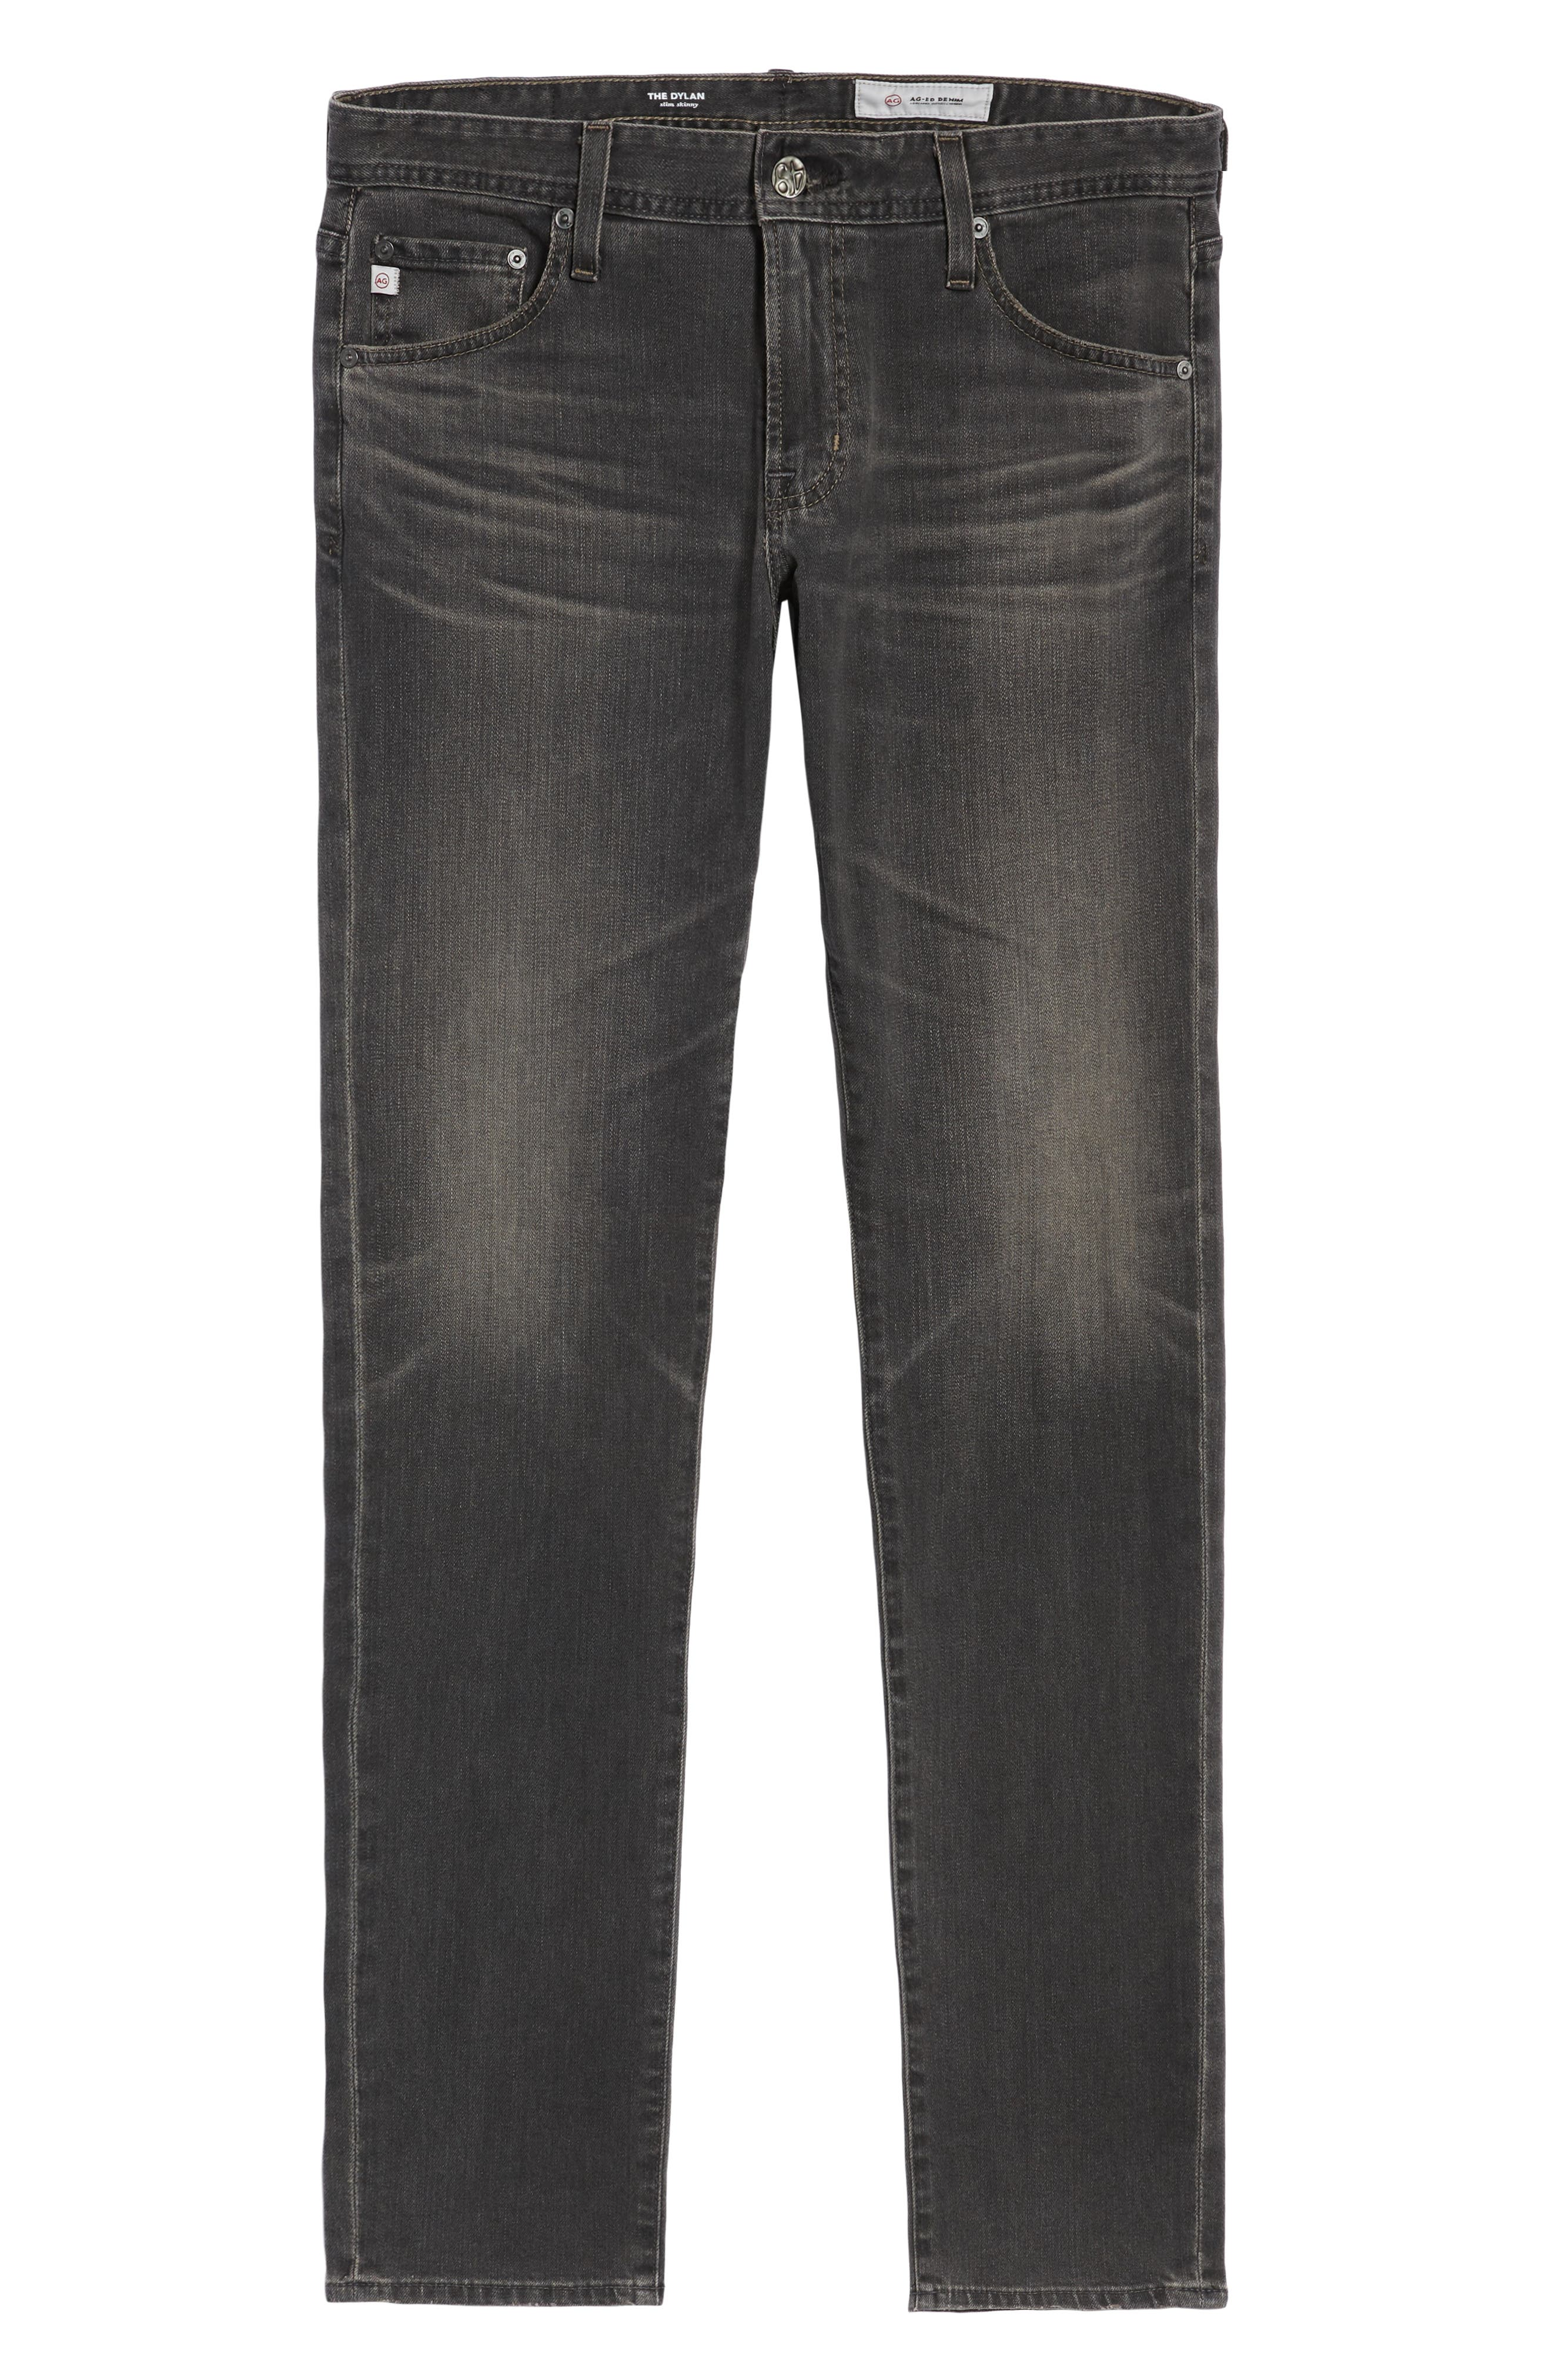 Dylan Skinny Fit Jeans,                             Alternate thumbnail 6, color,                             6 YEARS ARCADE